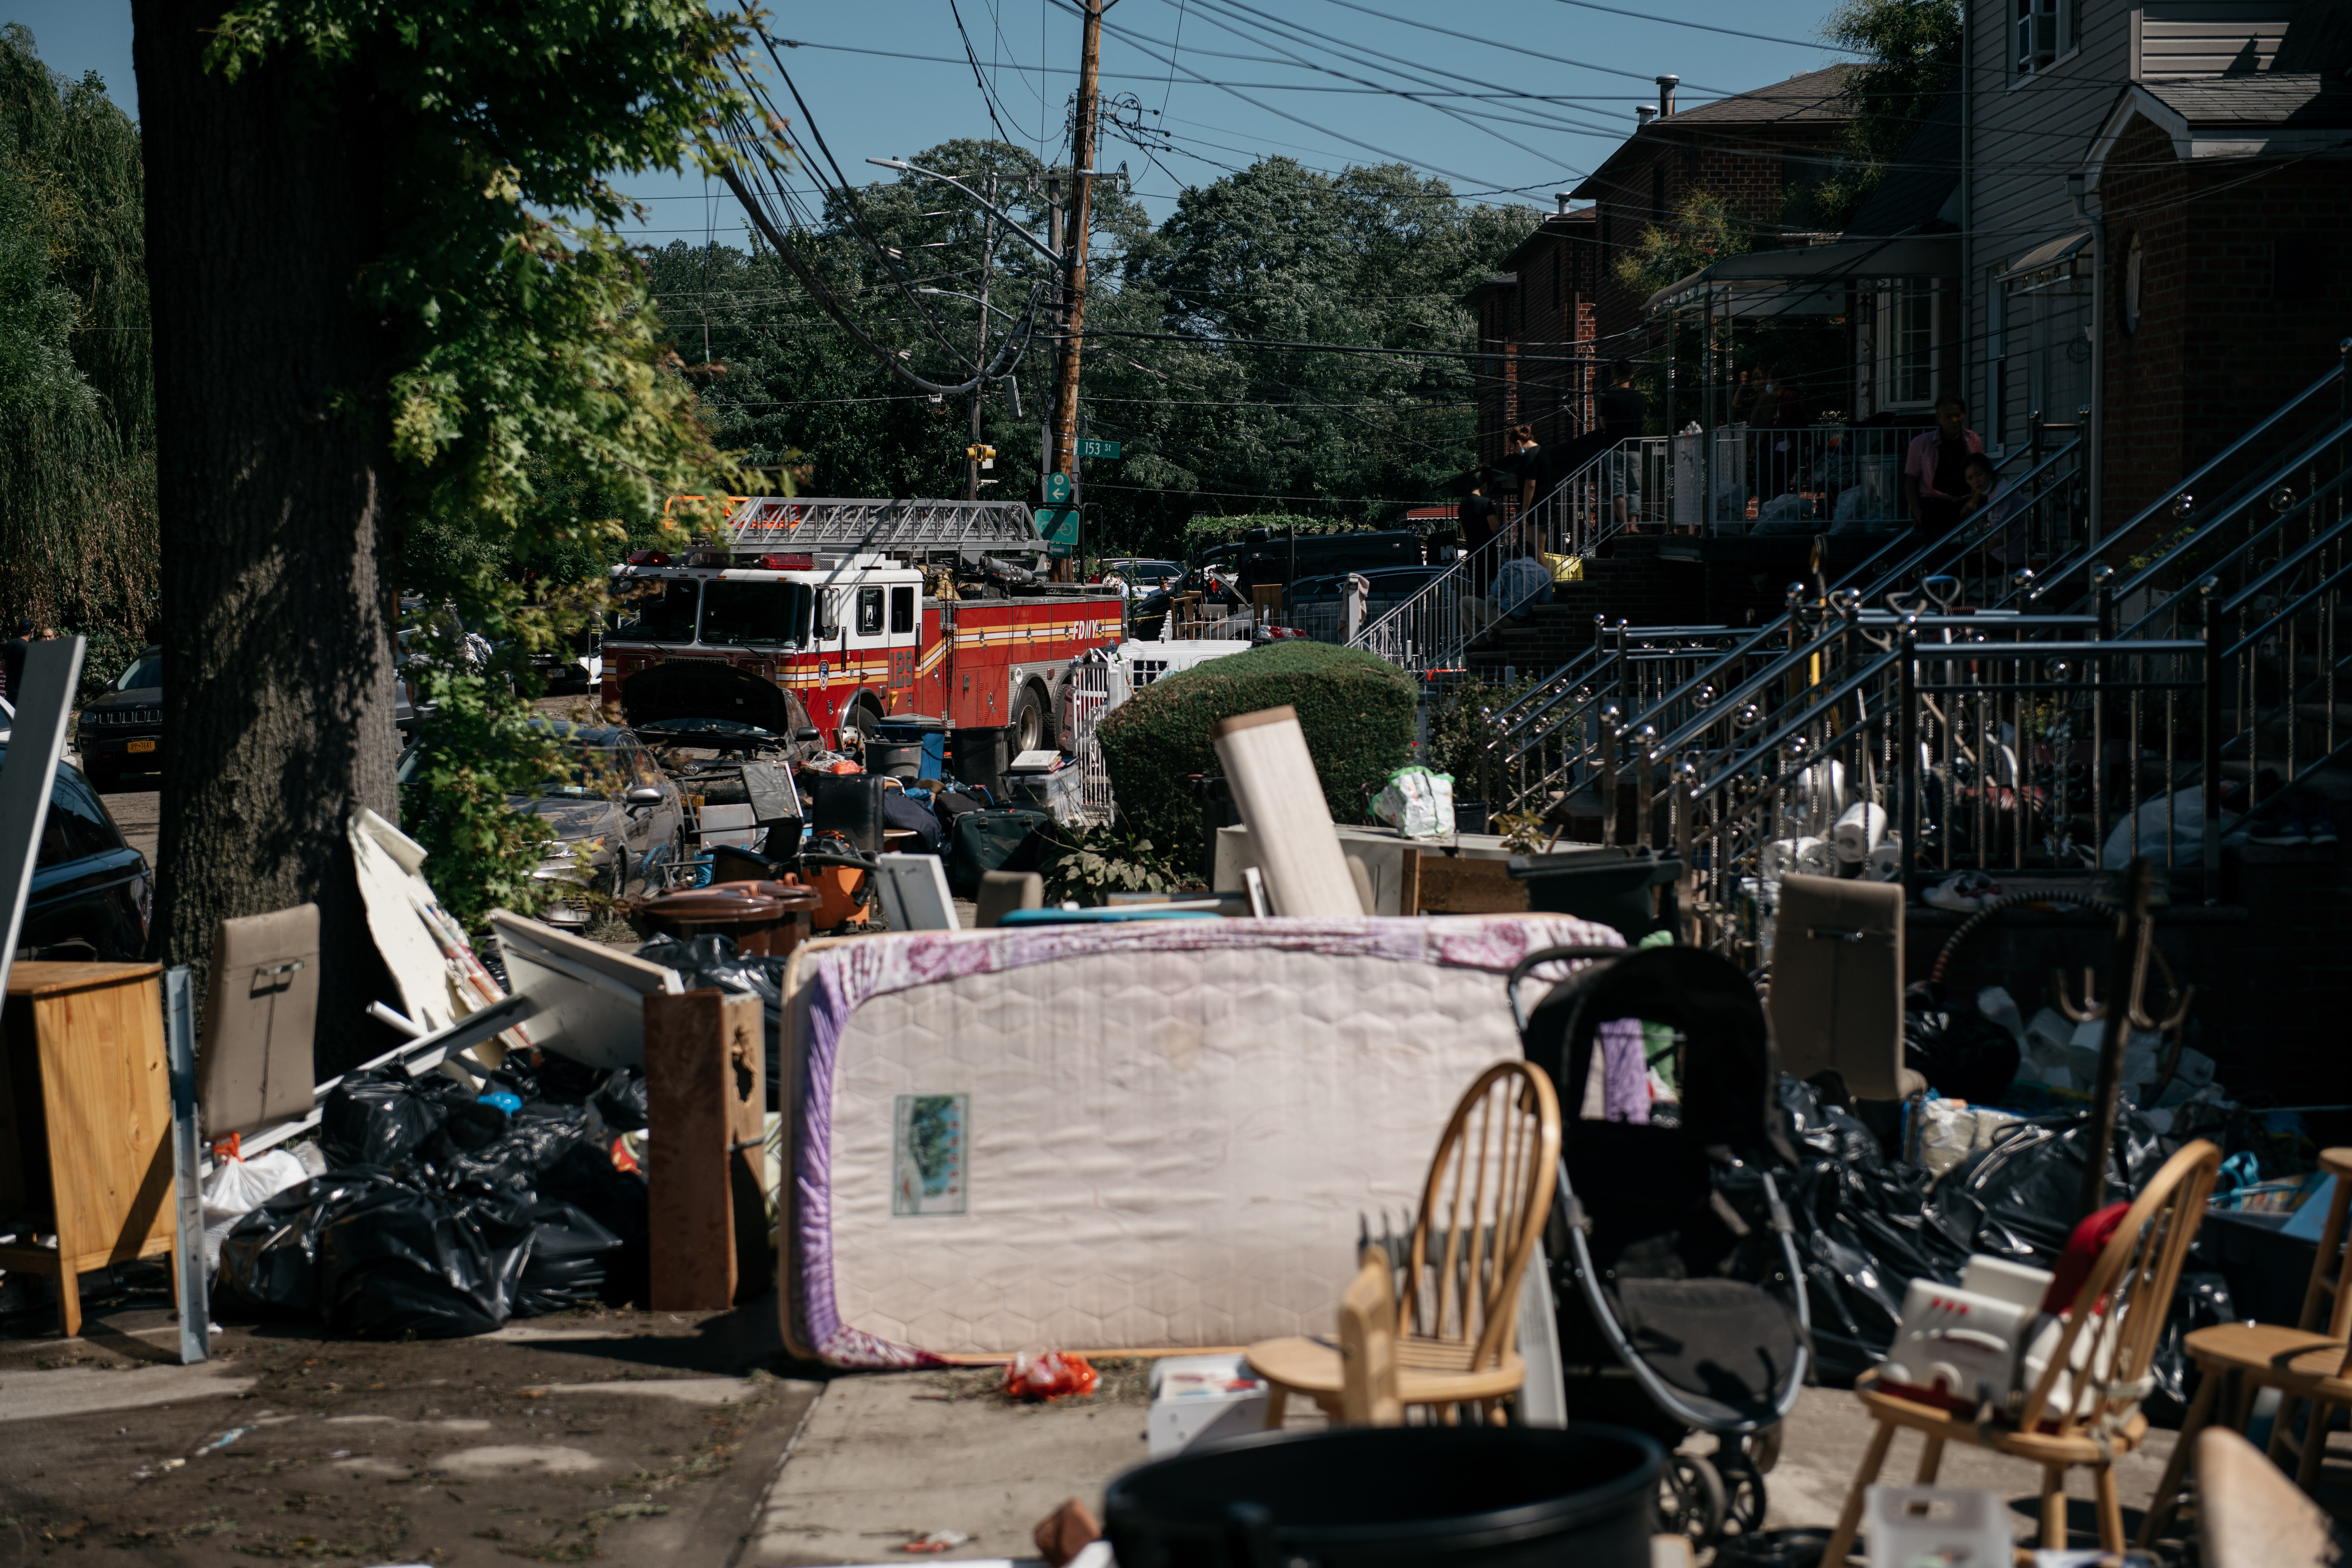 Residents sort through damaged and destroyed items after a night of heavy rain and wind caused many homes to flood in the Flushing neighborhood of the Queens borough of New York City. (Photo by Scott Heins/Getty Images)